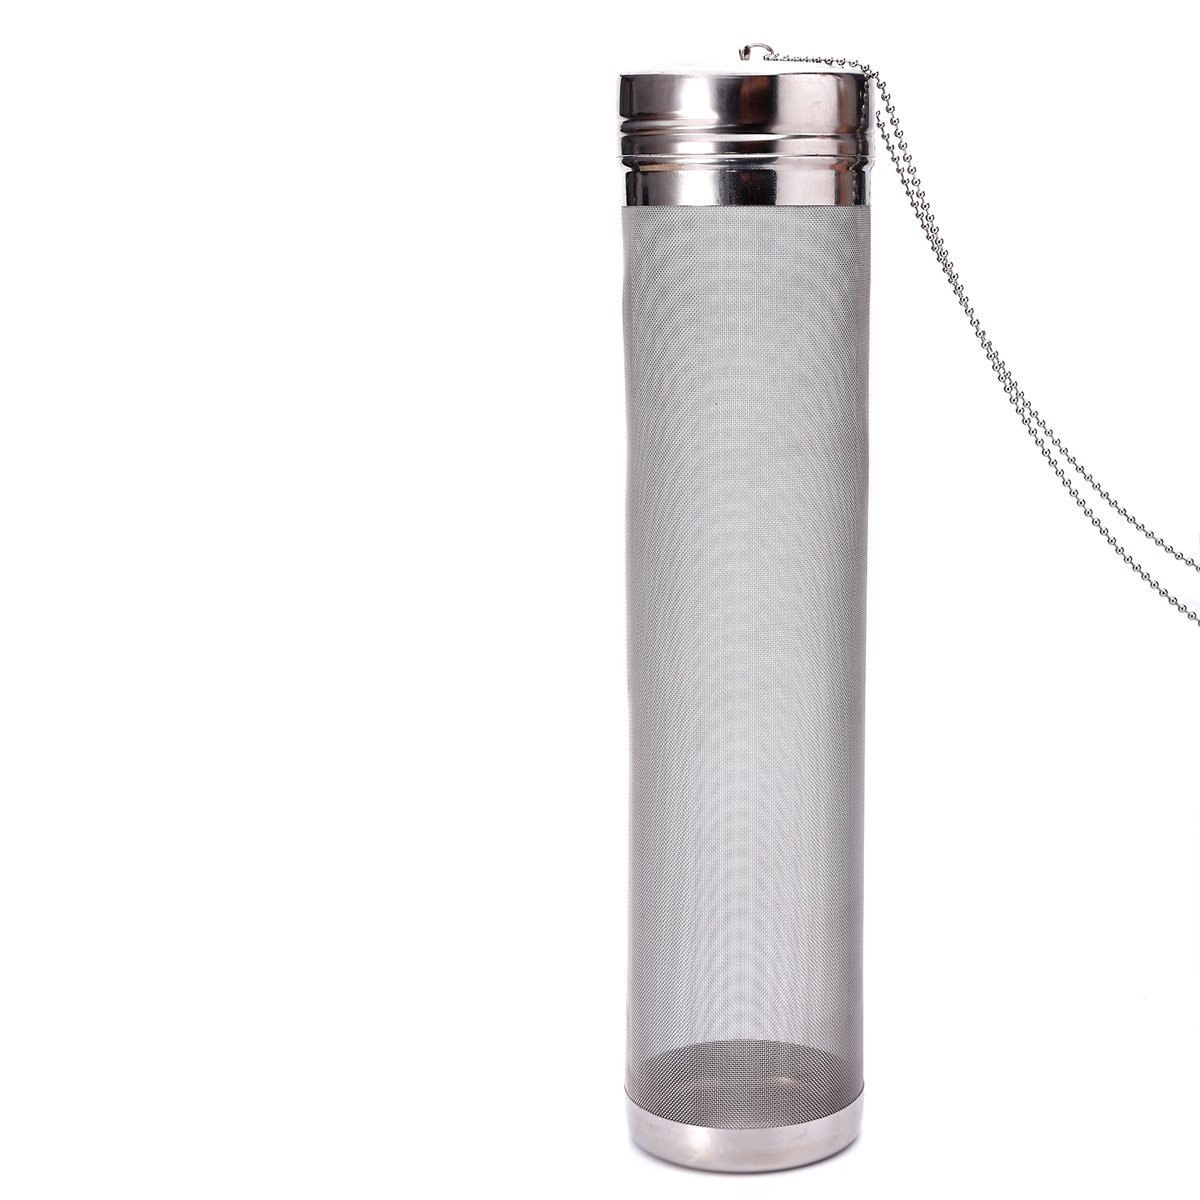 300 Micron Mesh Stainless Steel Dry Hopper Brewing Filter for Cornelius Kegs Corny Keg Home Brewing (2.8 x 11.8 in)